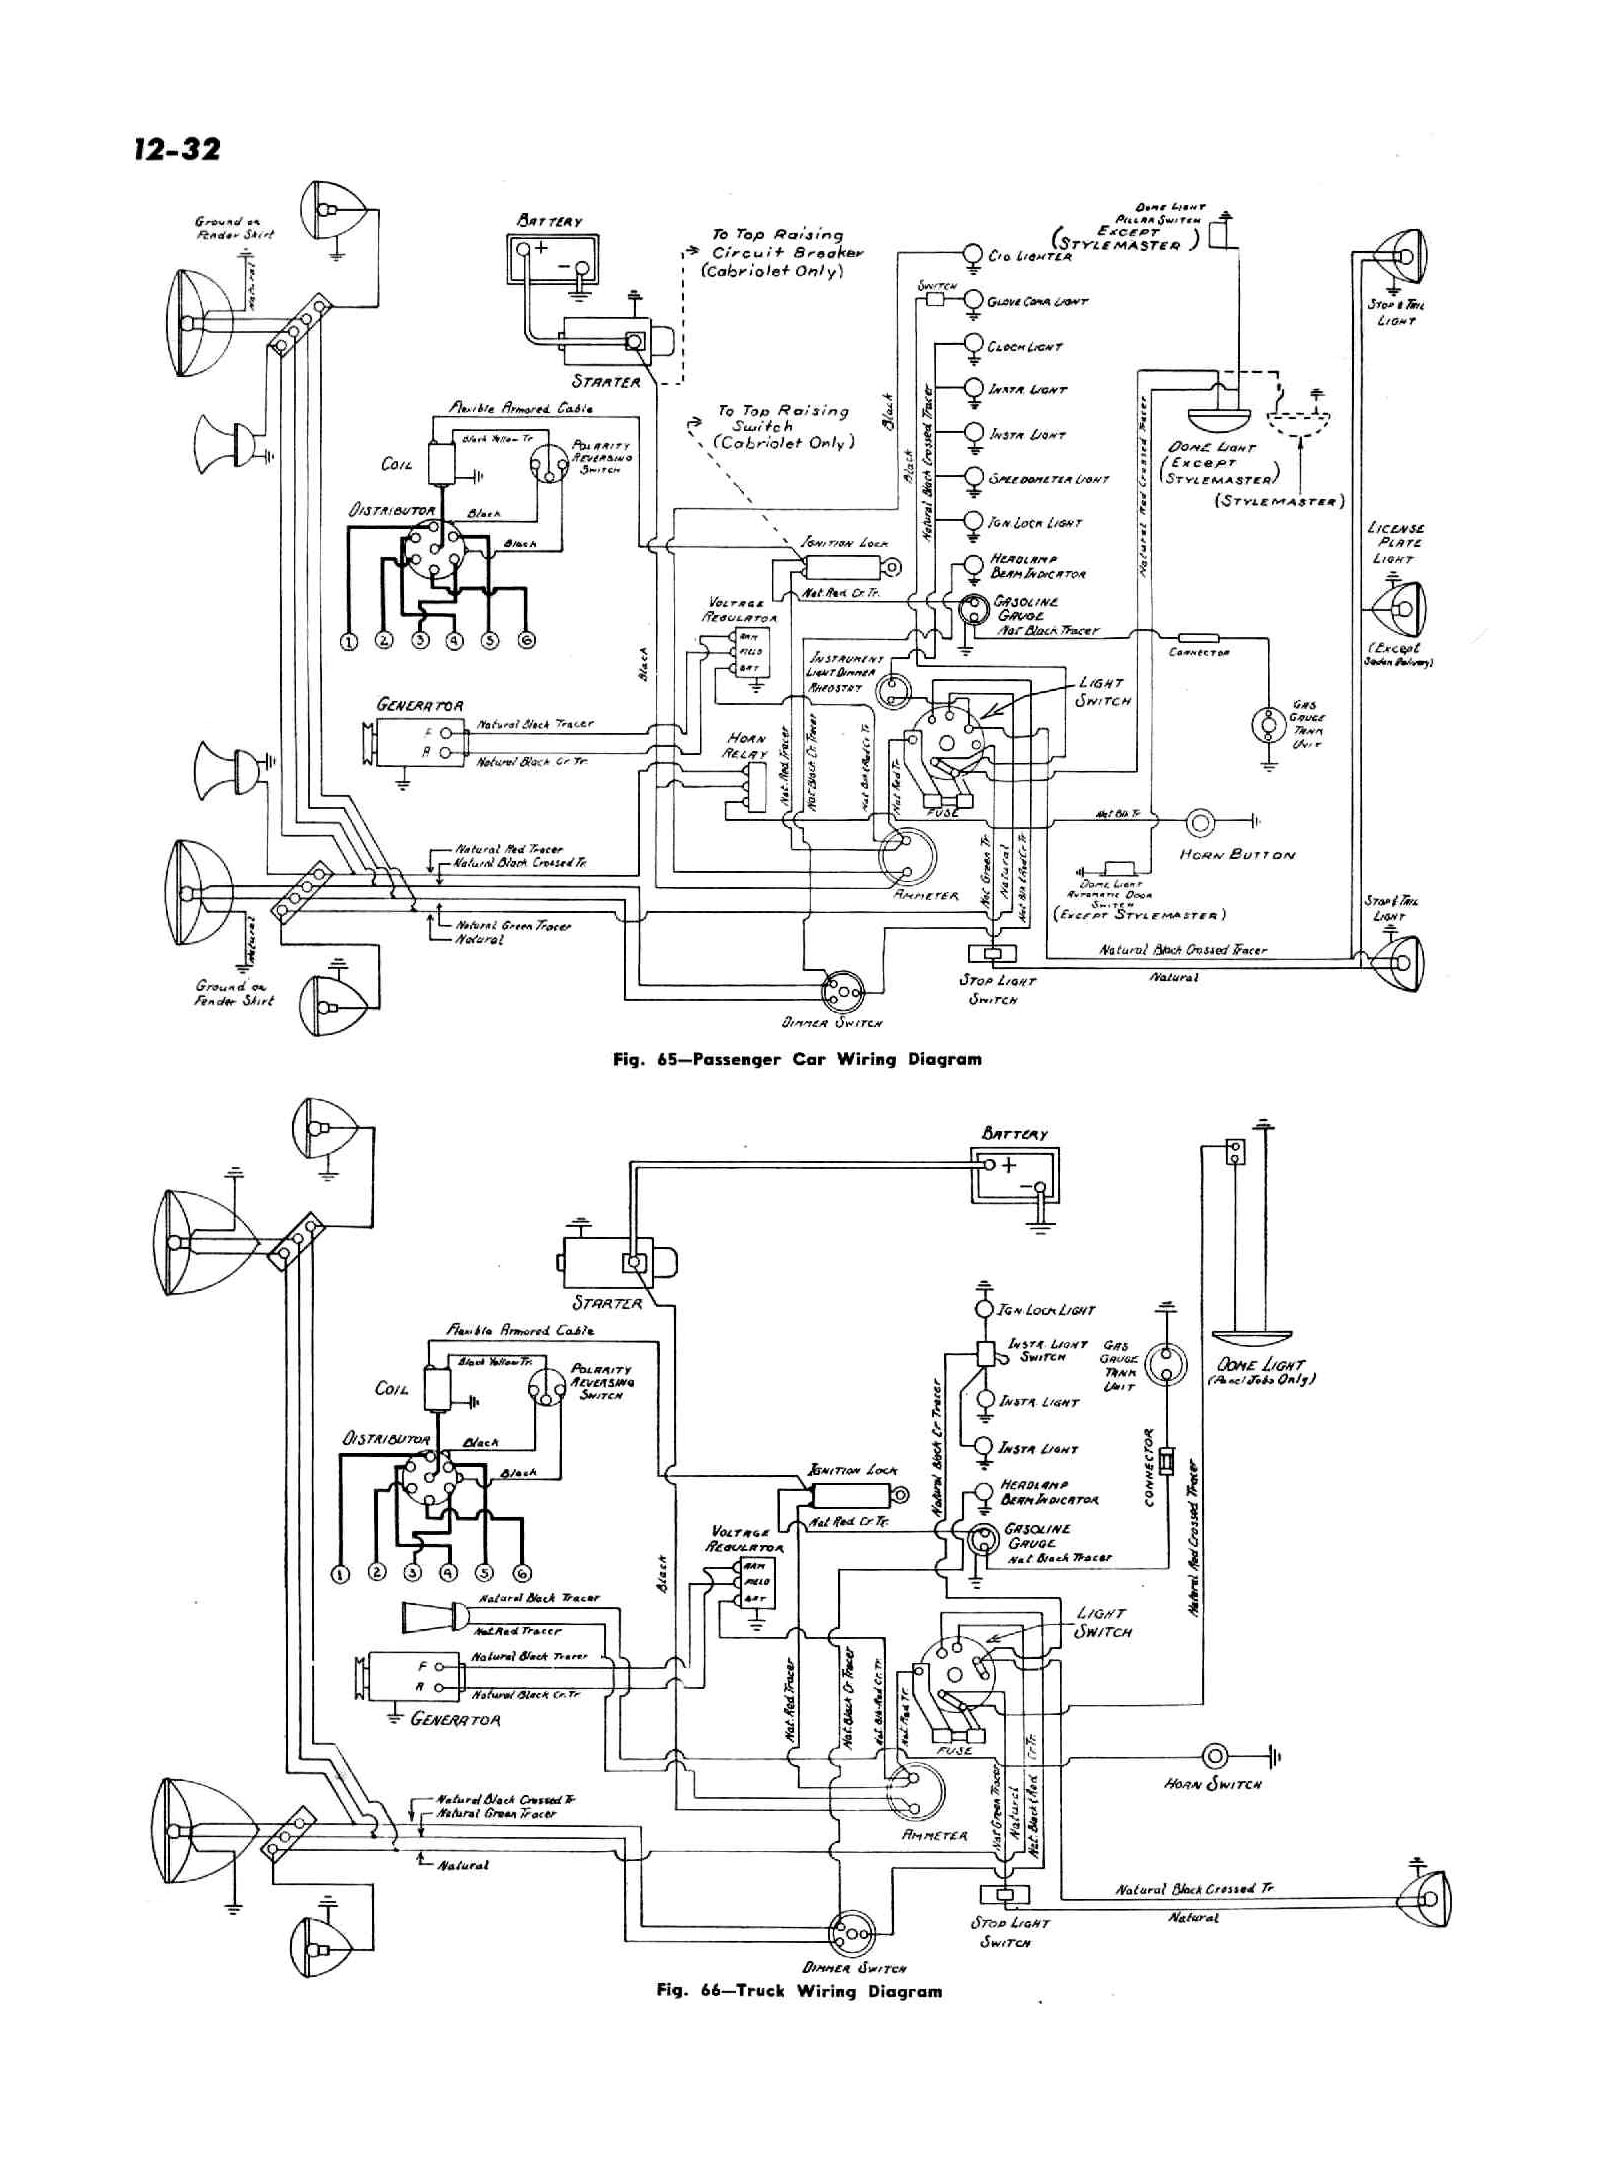 4247csm1232 chevy wiring diagrams